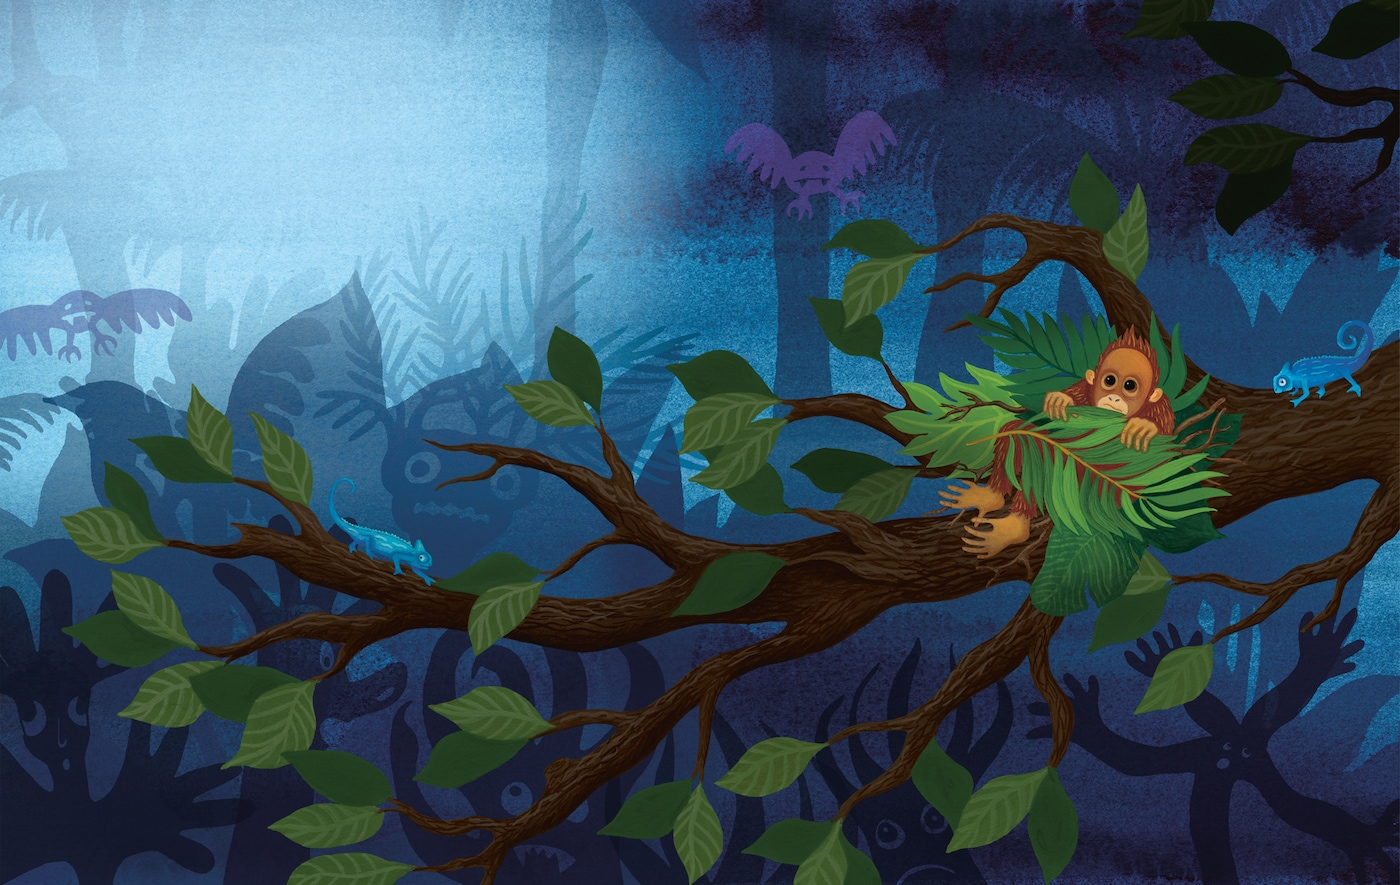 A colourful illustration of a baby orangutan hiding in a tree in the dark.